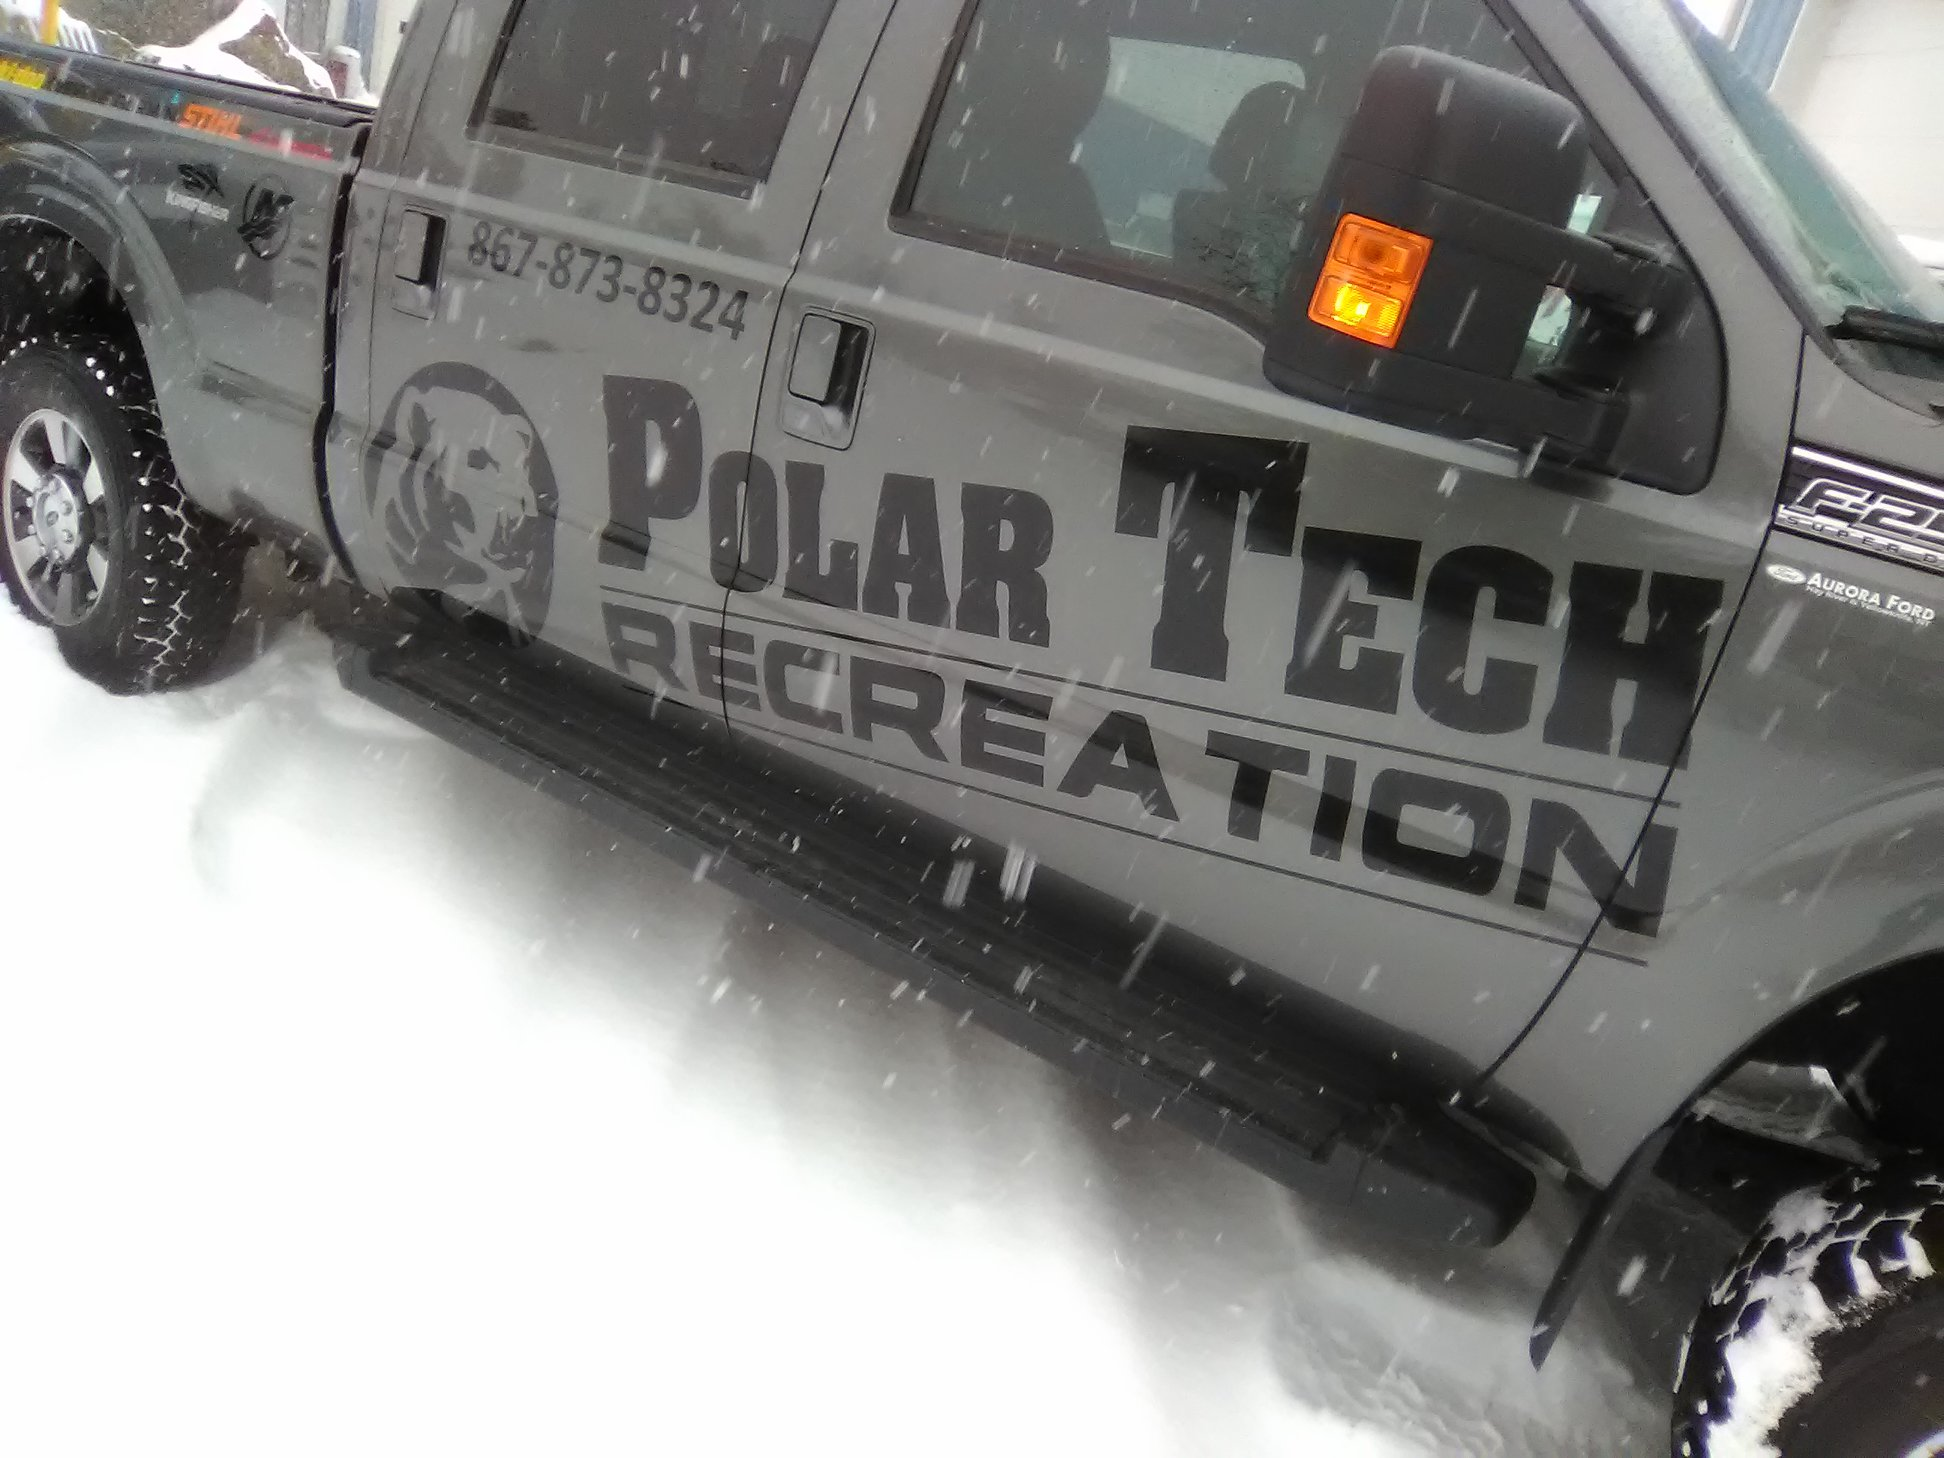 Polar Tech Commercial Vehicle Wrap